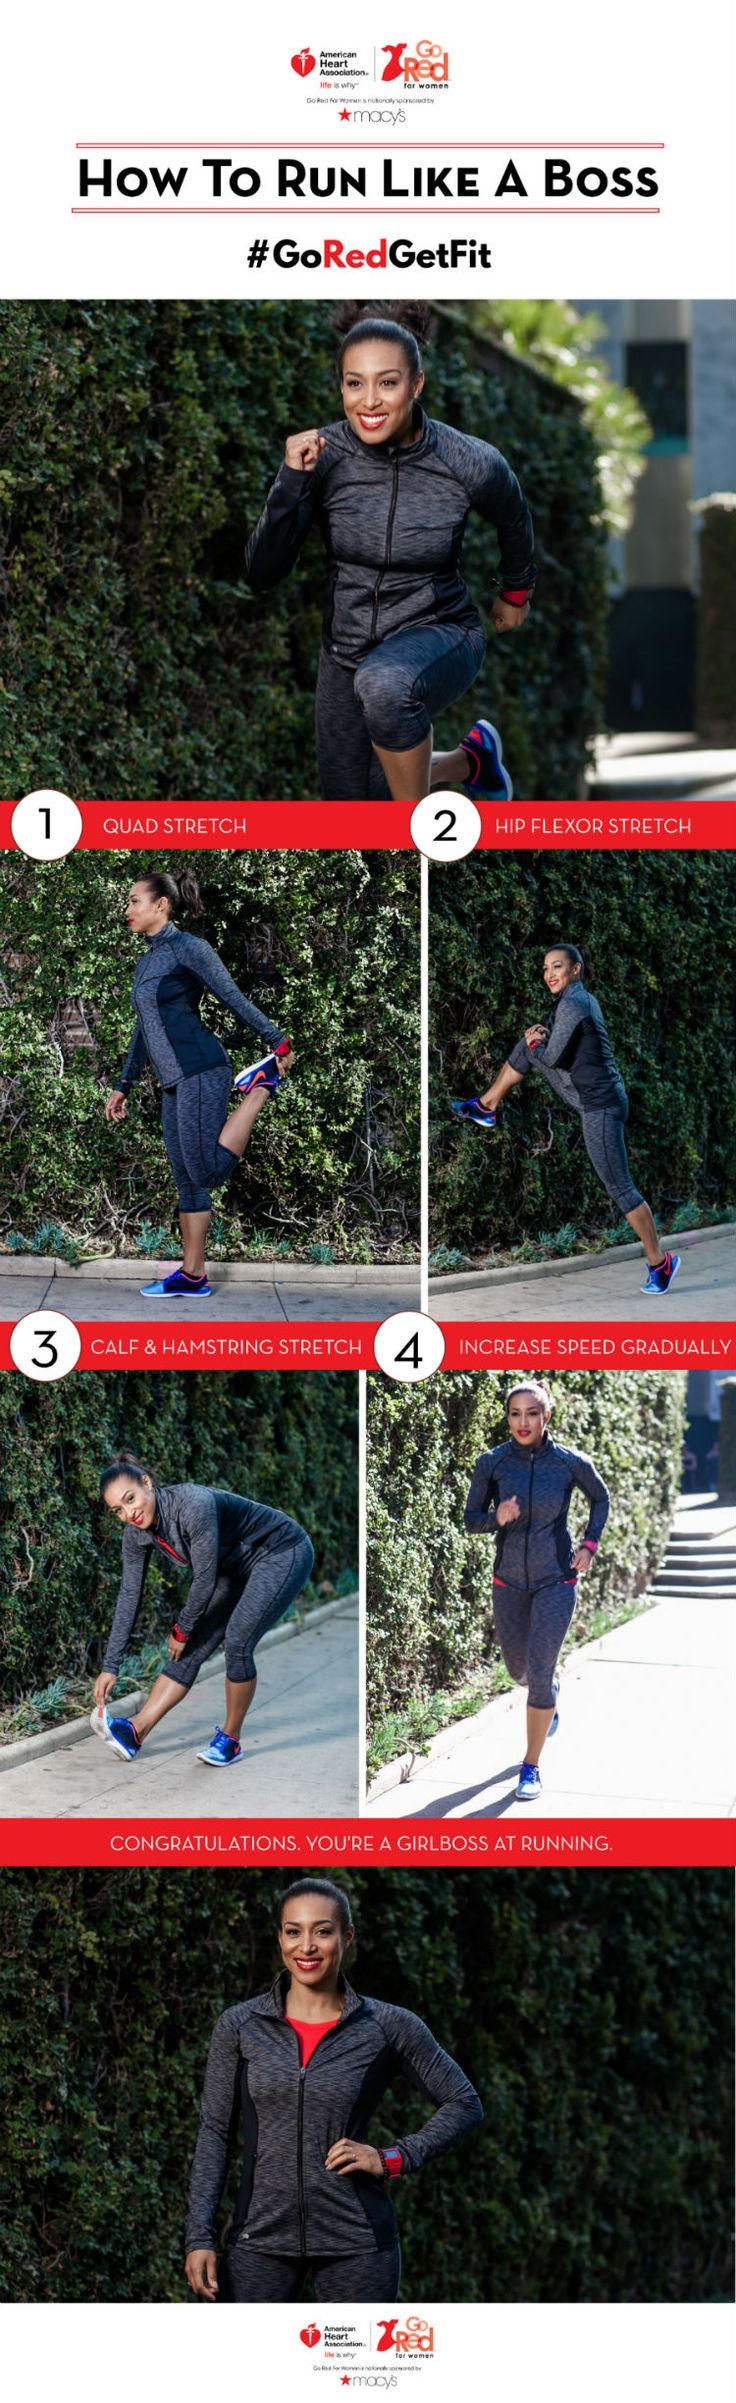 Before hitting the pavement, there are different stretches that can maximize your time running. Try these to loosen up your legs for more miles, and more heart-healthy time! #Fitness